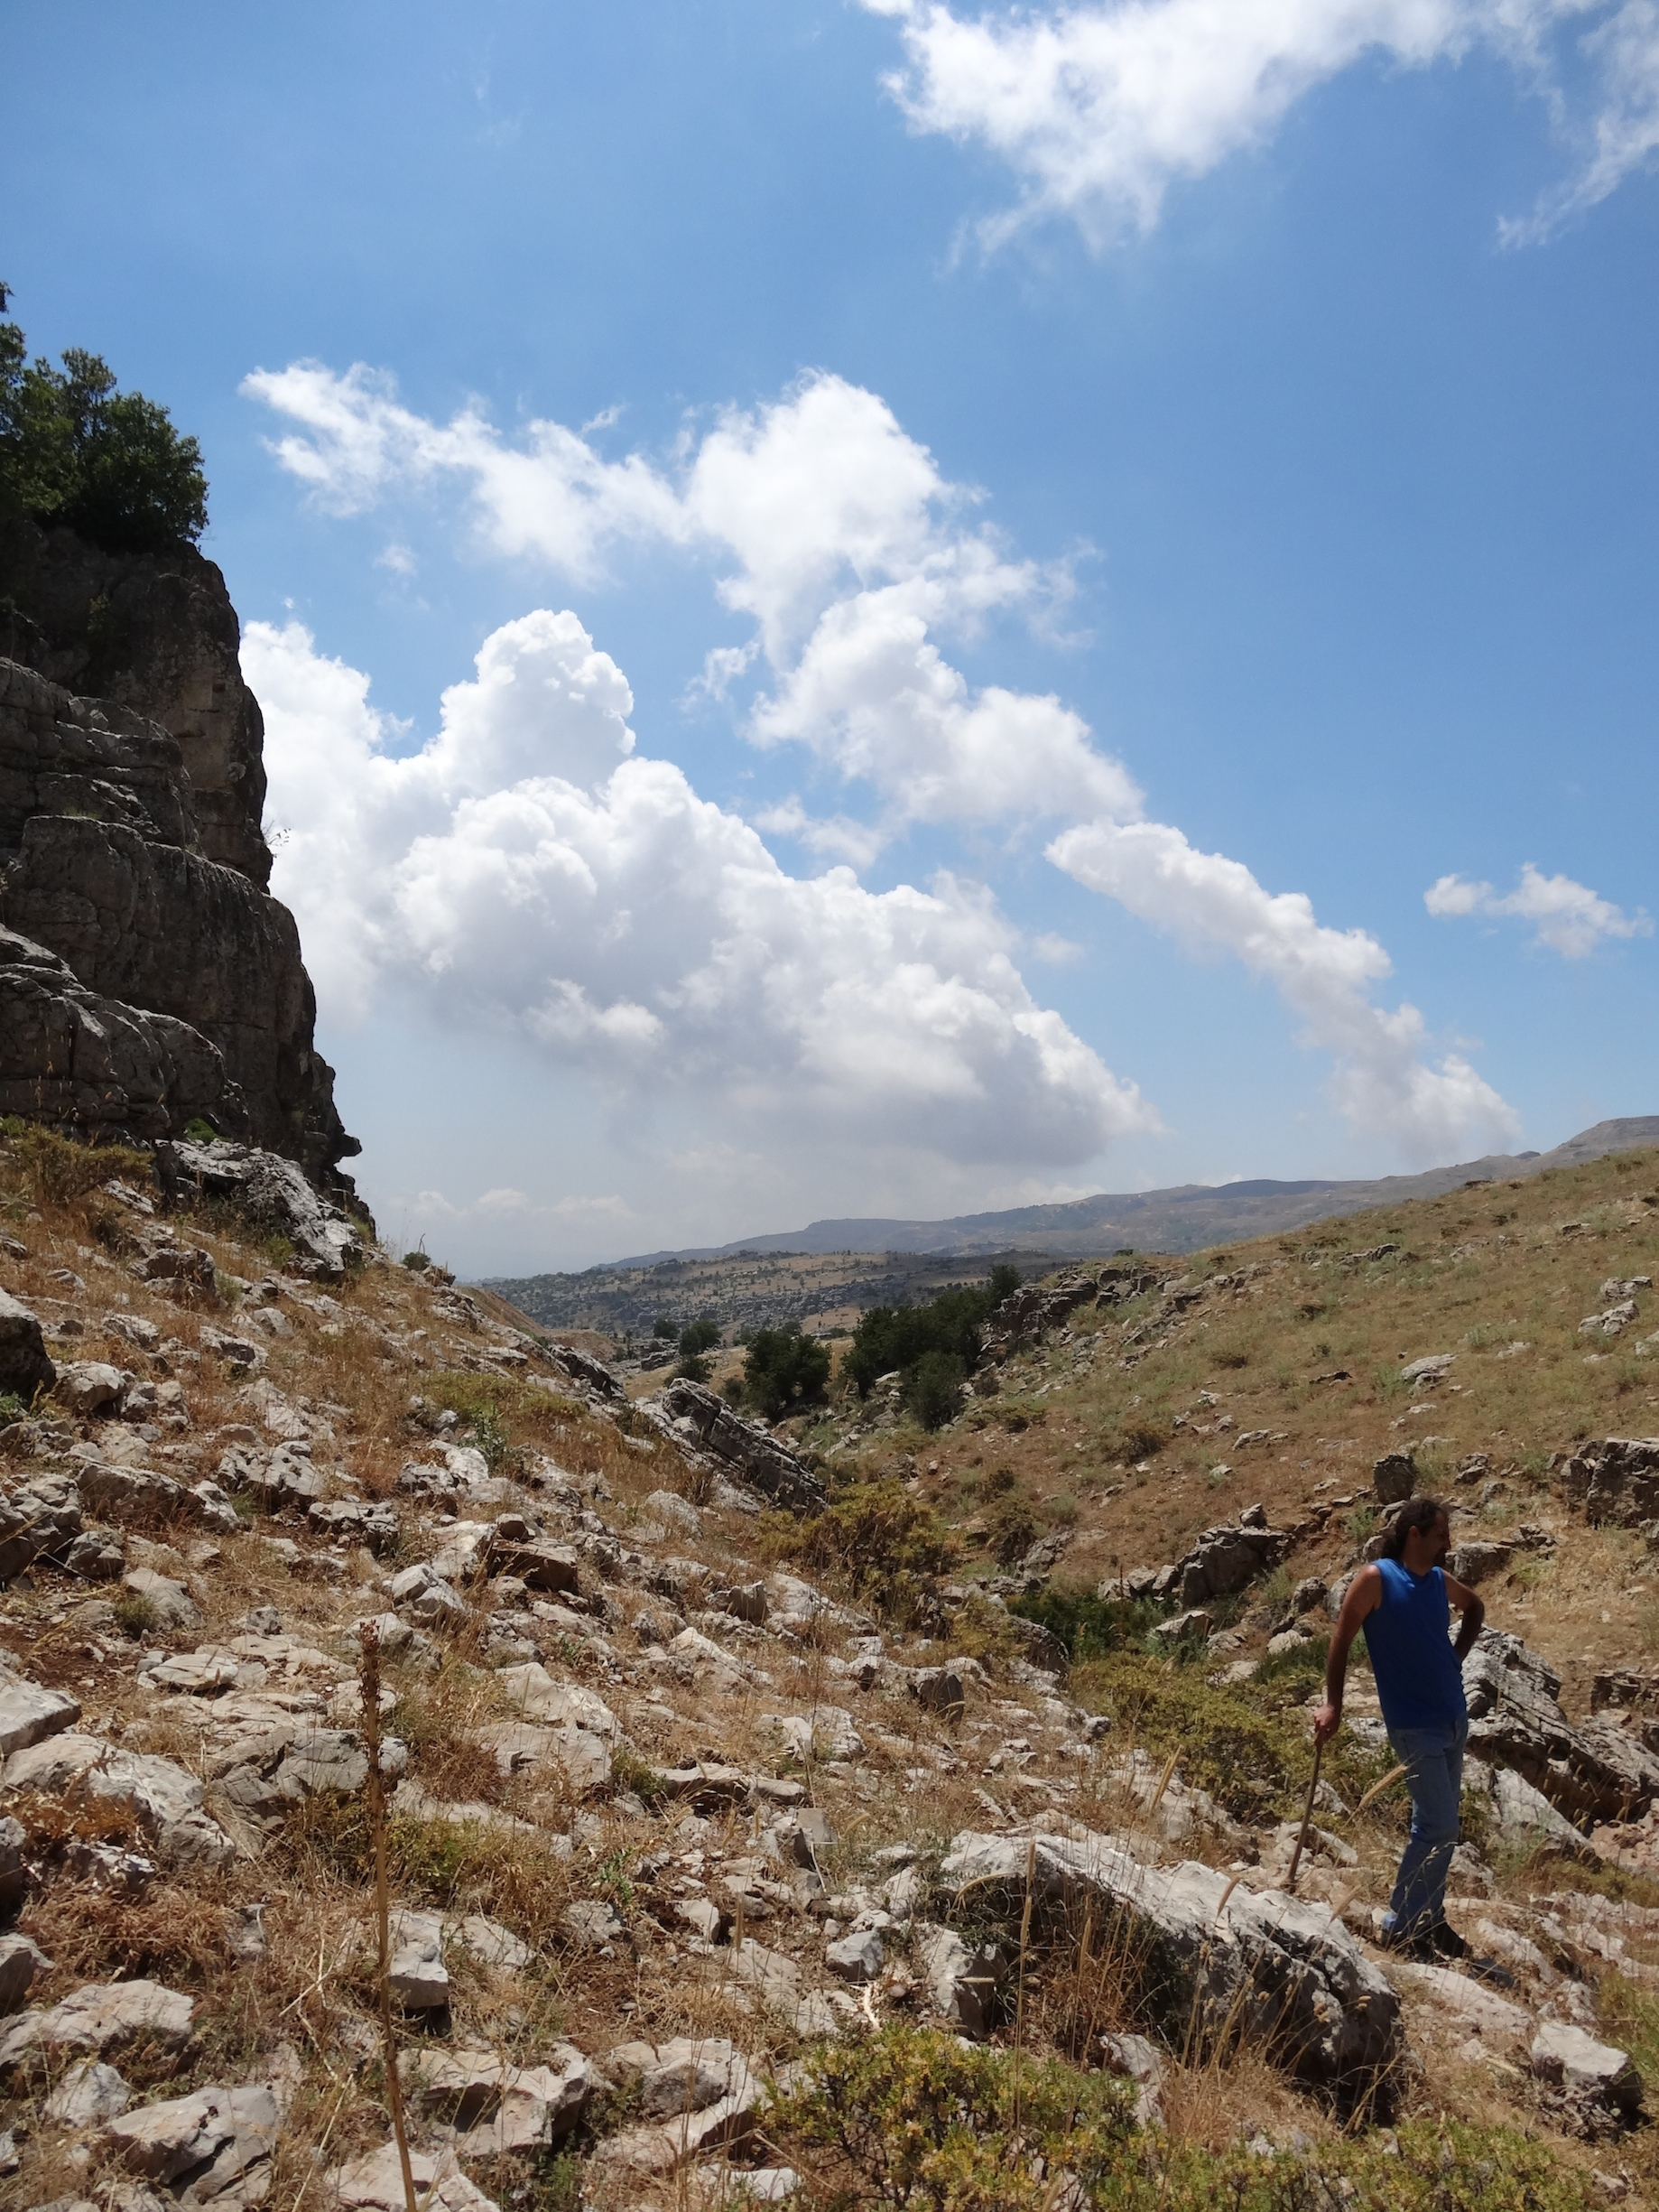 The rocky terrain of Tarshish